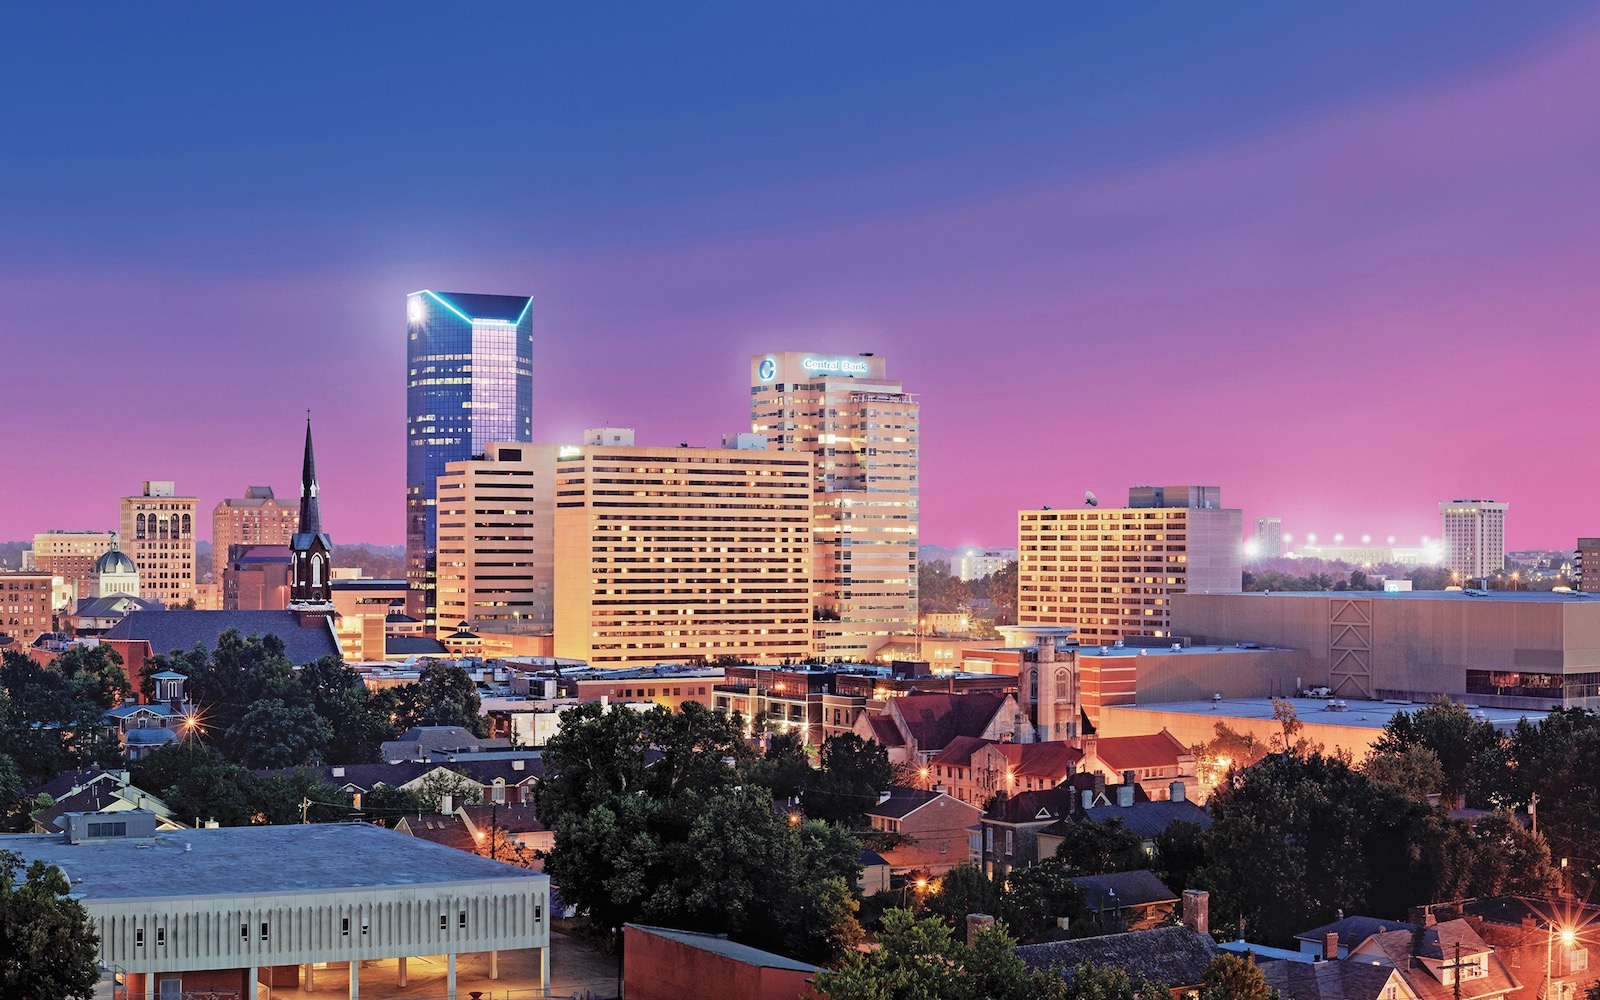 Lexington Kentucky skyline